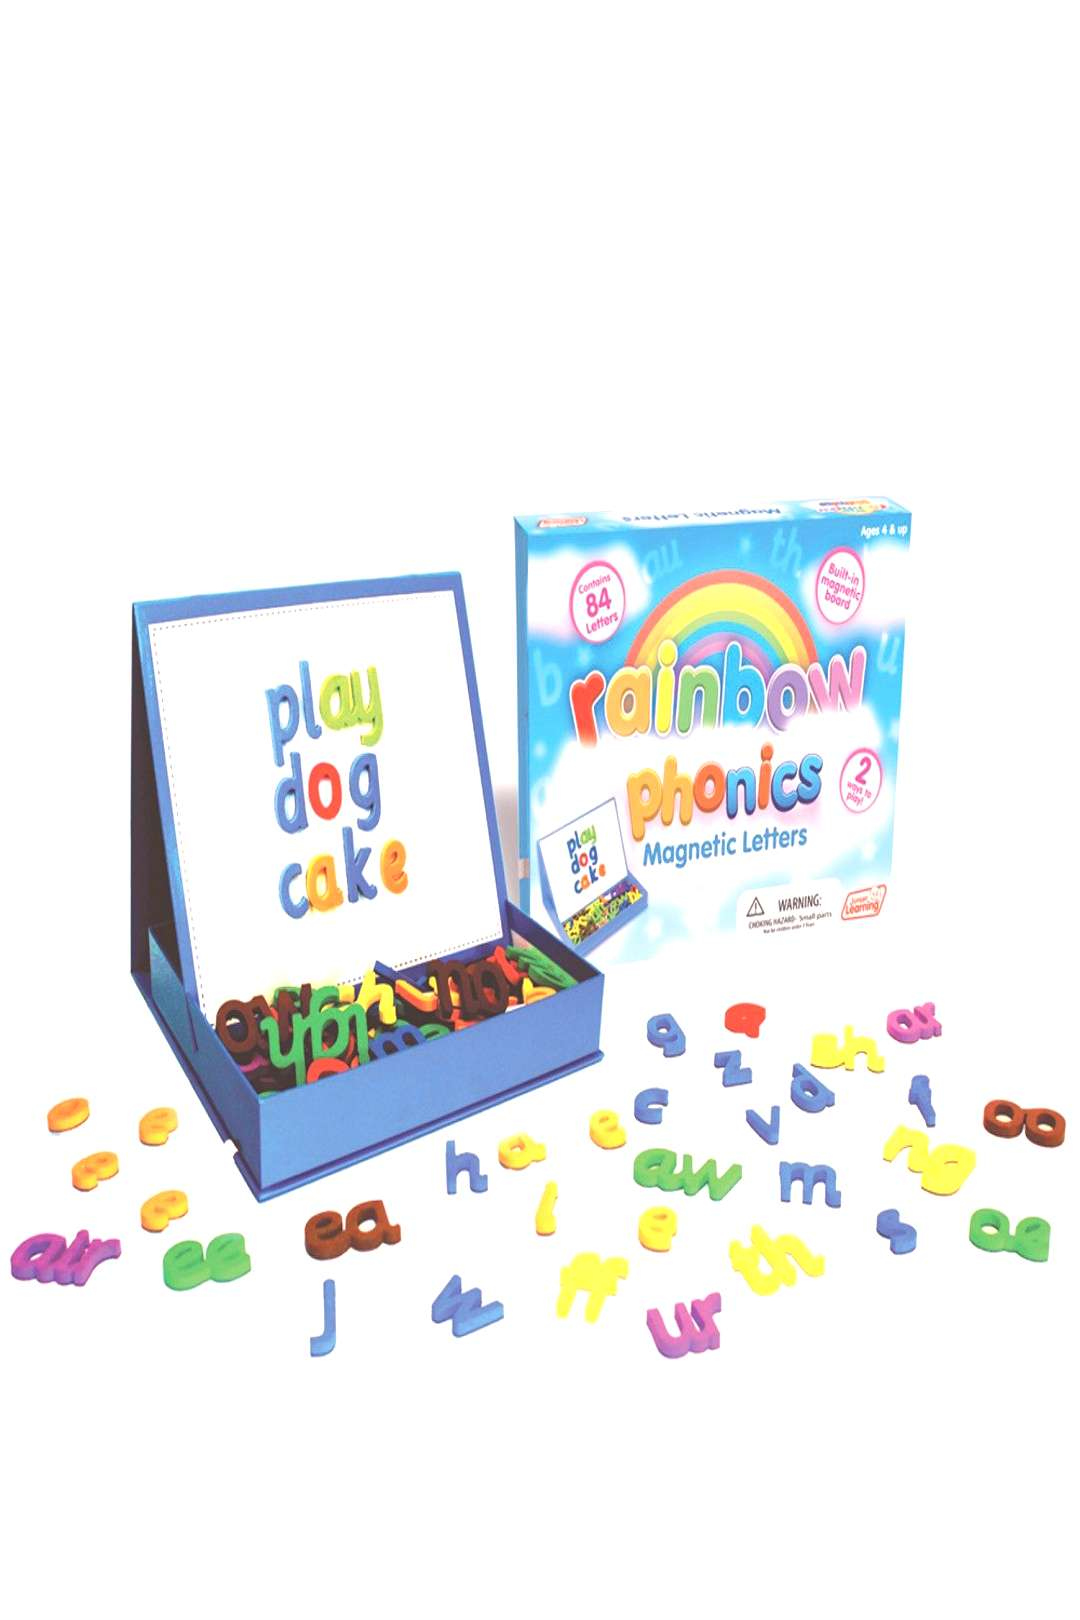 Junior Learning Rainbow Phonics Magnetic Letters amp Built-In Magnetic Board